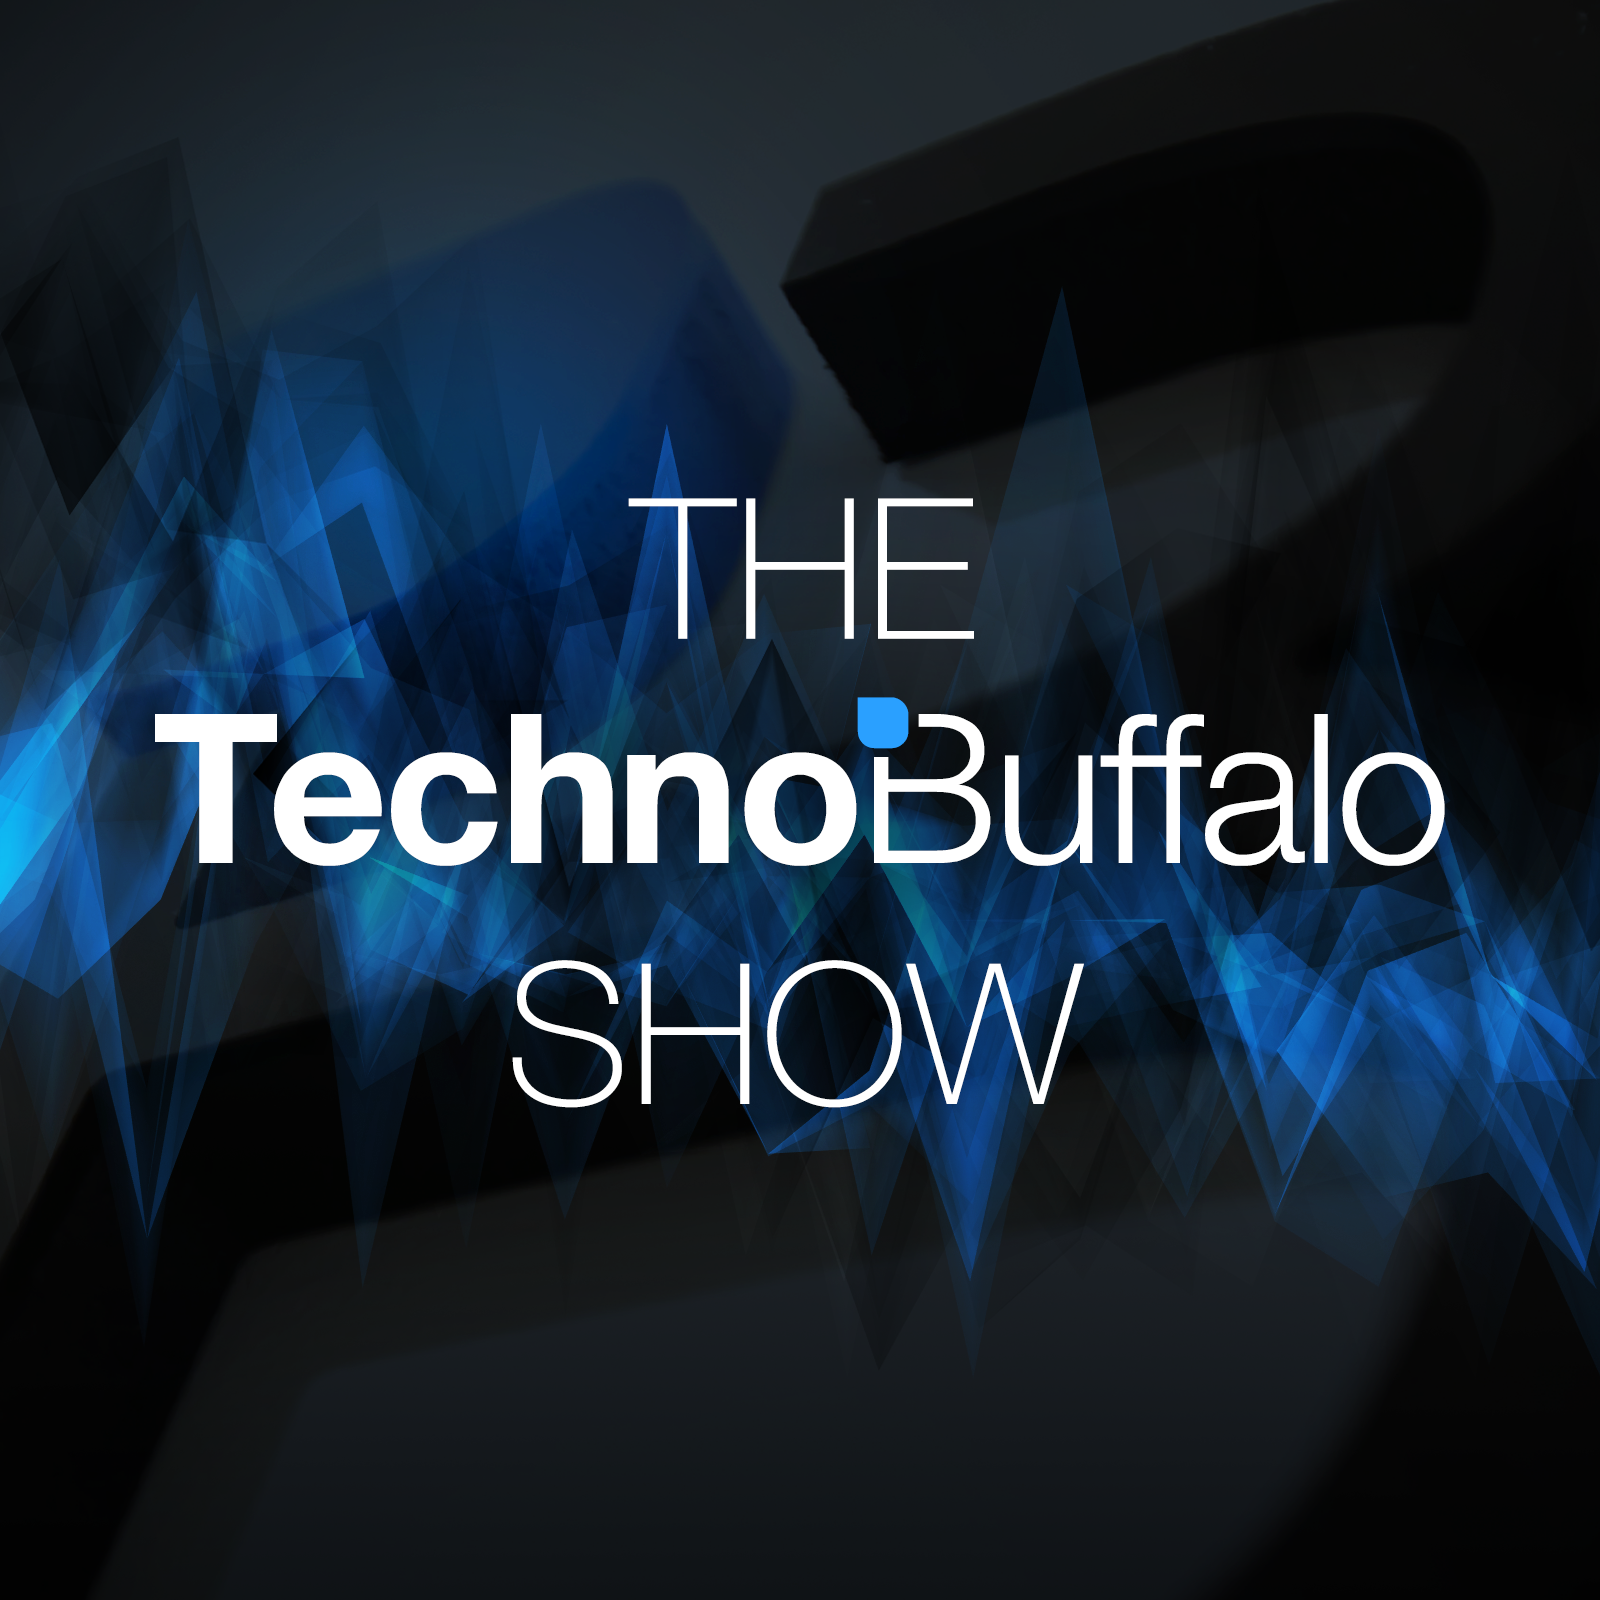 The TechnoBuffalo Show Episode #003